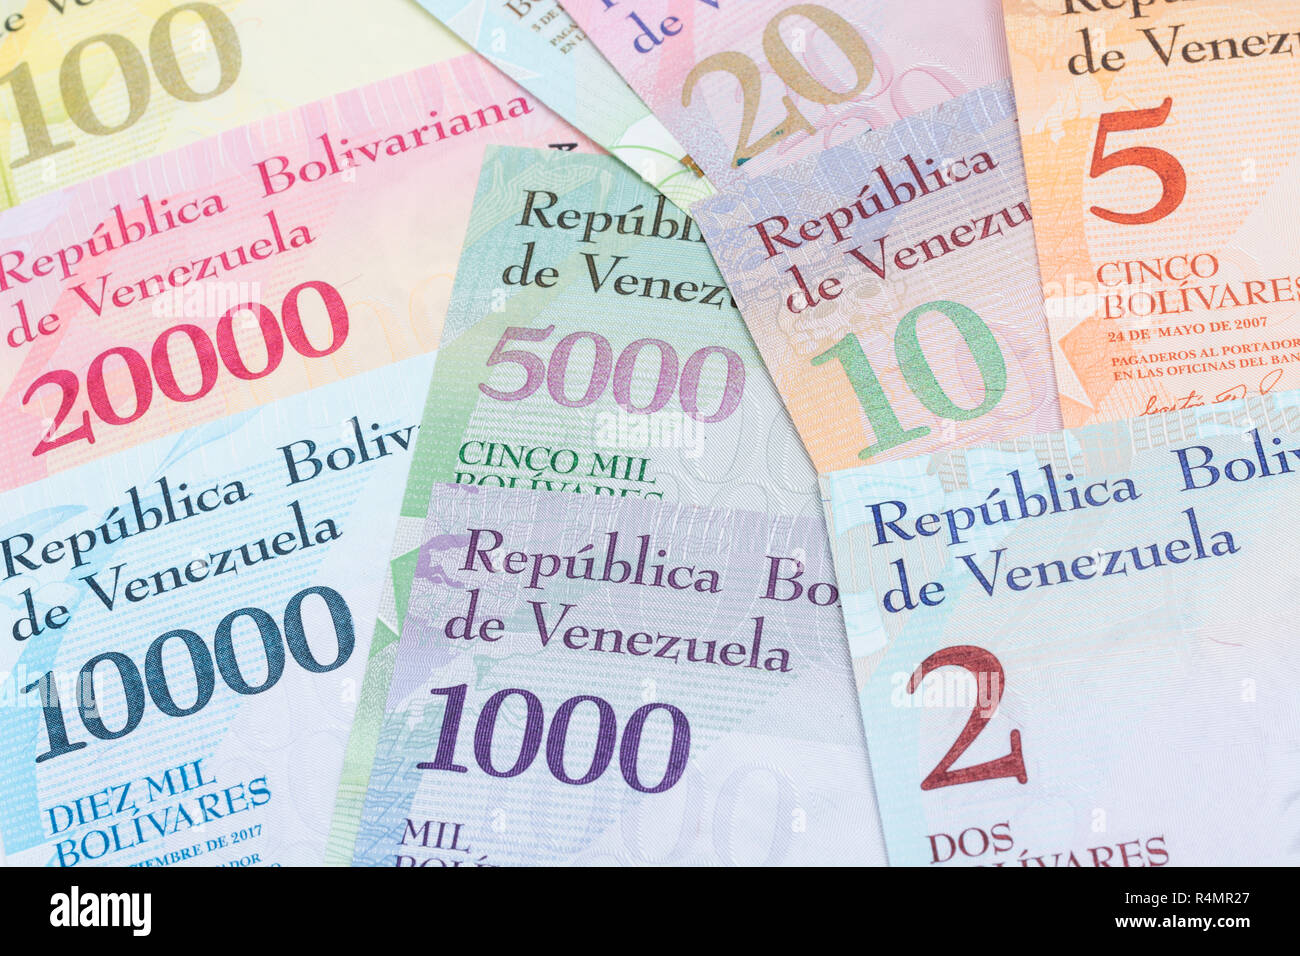 Venezuela Bolivar banknotes - metaphor for Hyperinflation in the Venezuelan economy, where banknotes are almost worthless. SEE ADDIT. NOTES - Stock Image